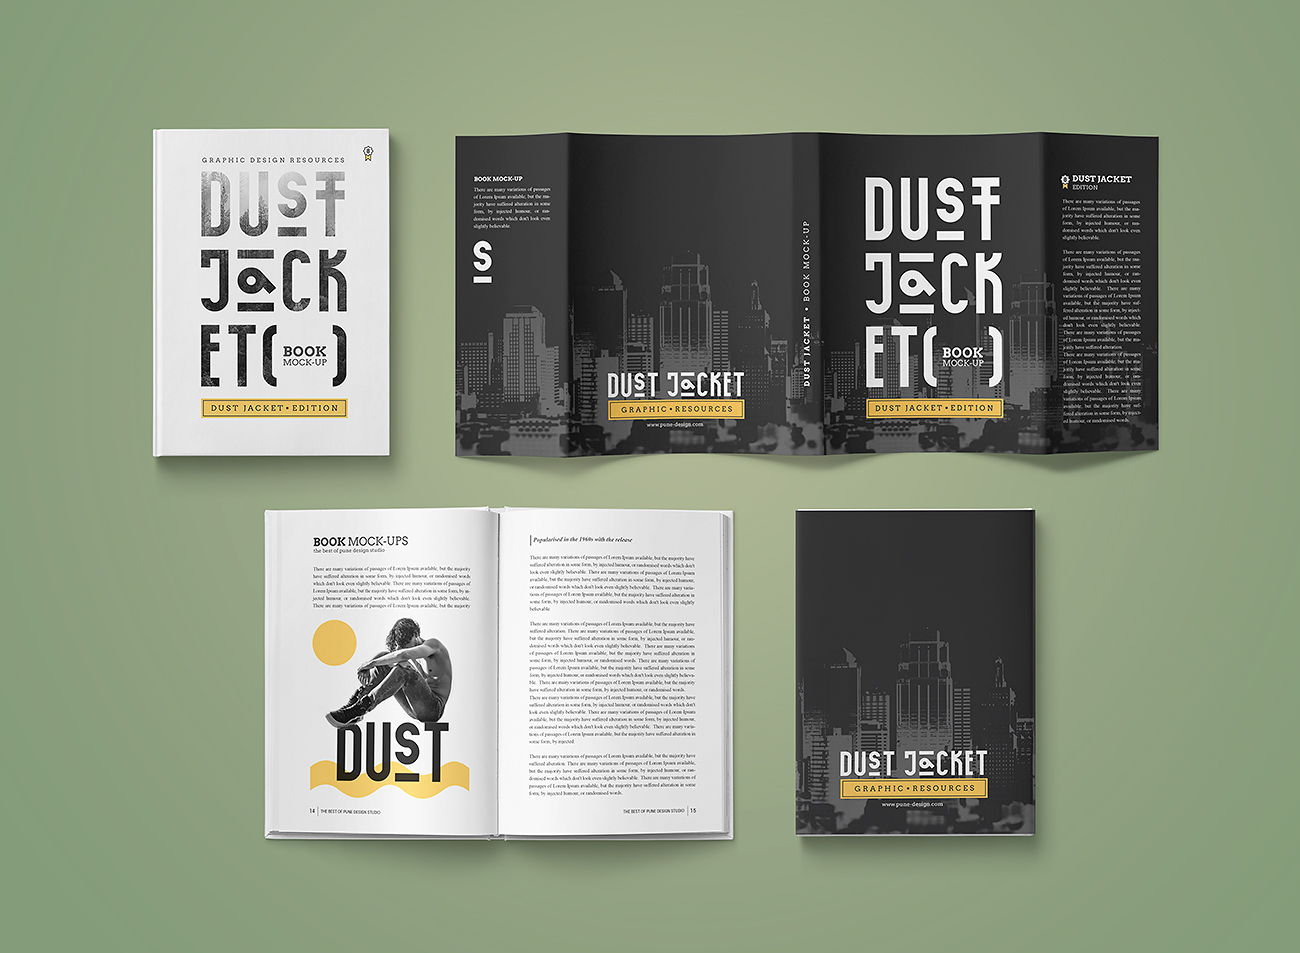 Book Mock-up    Dust Jacket Edition